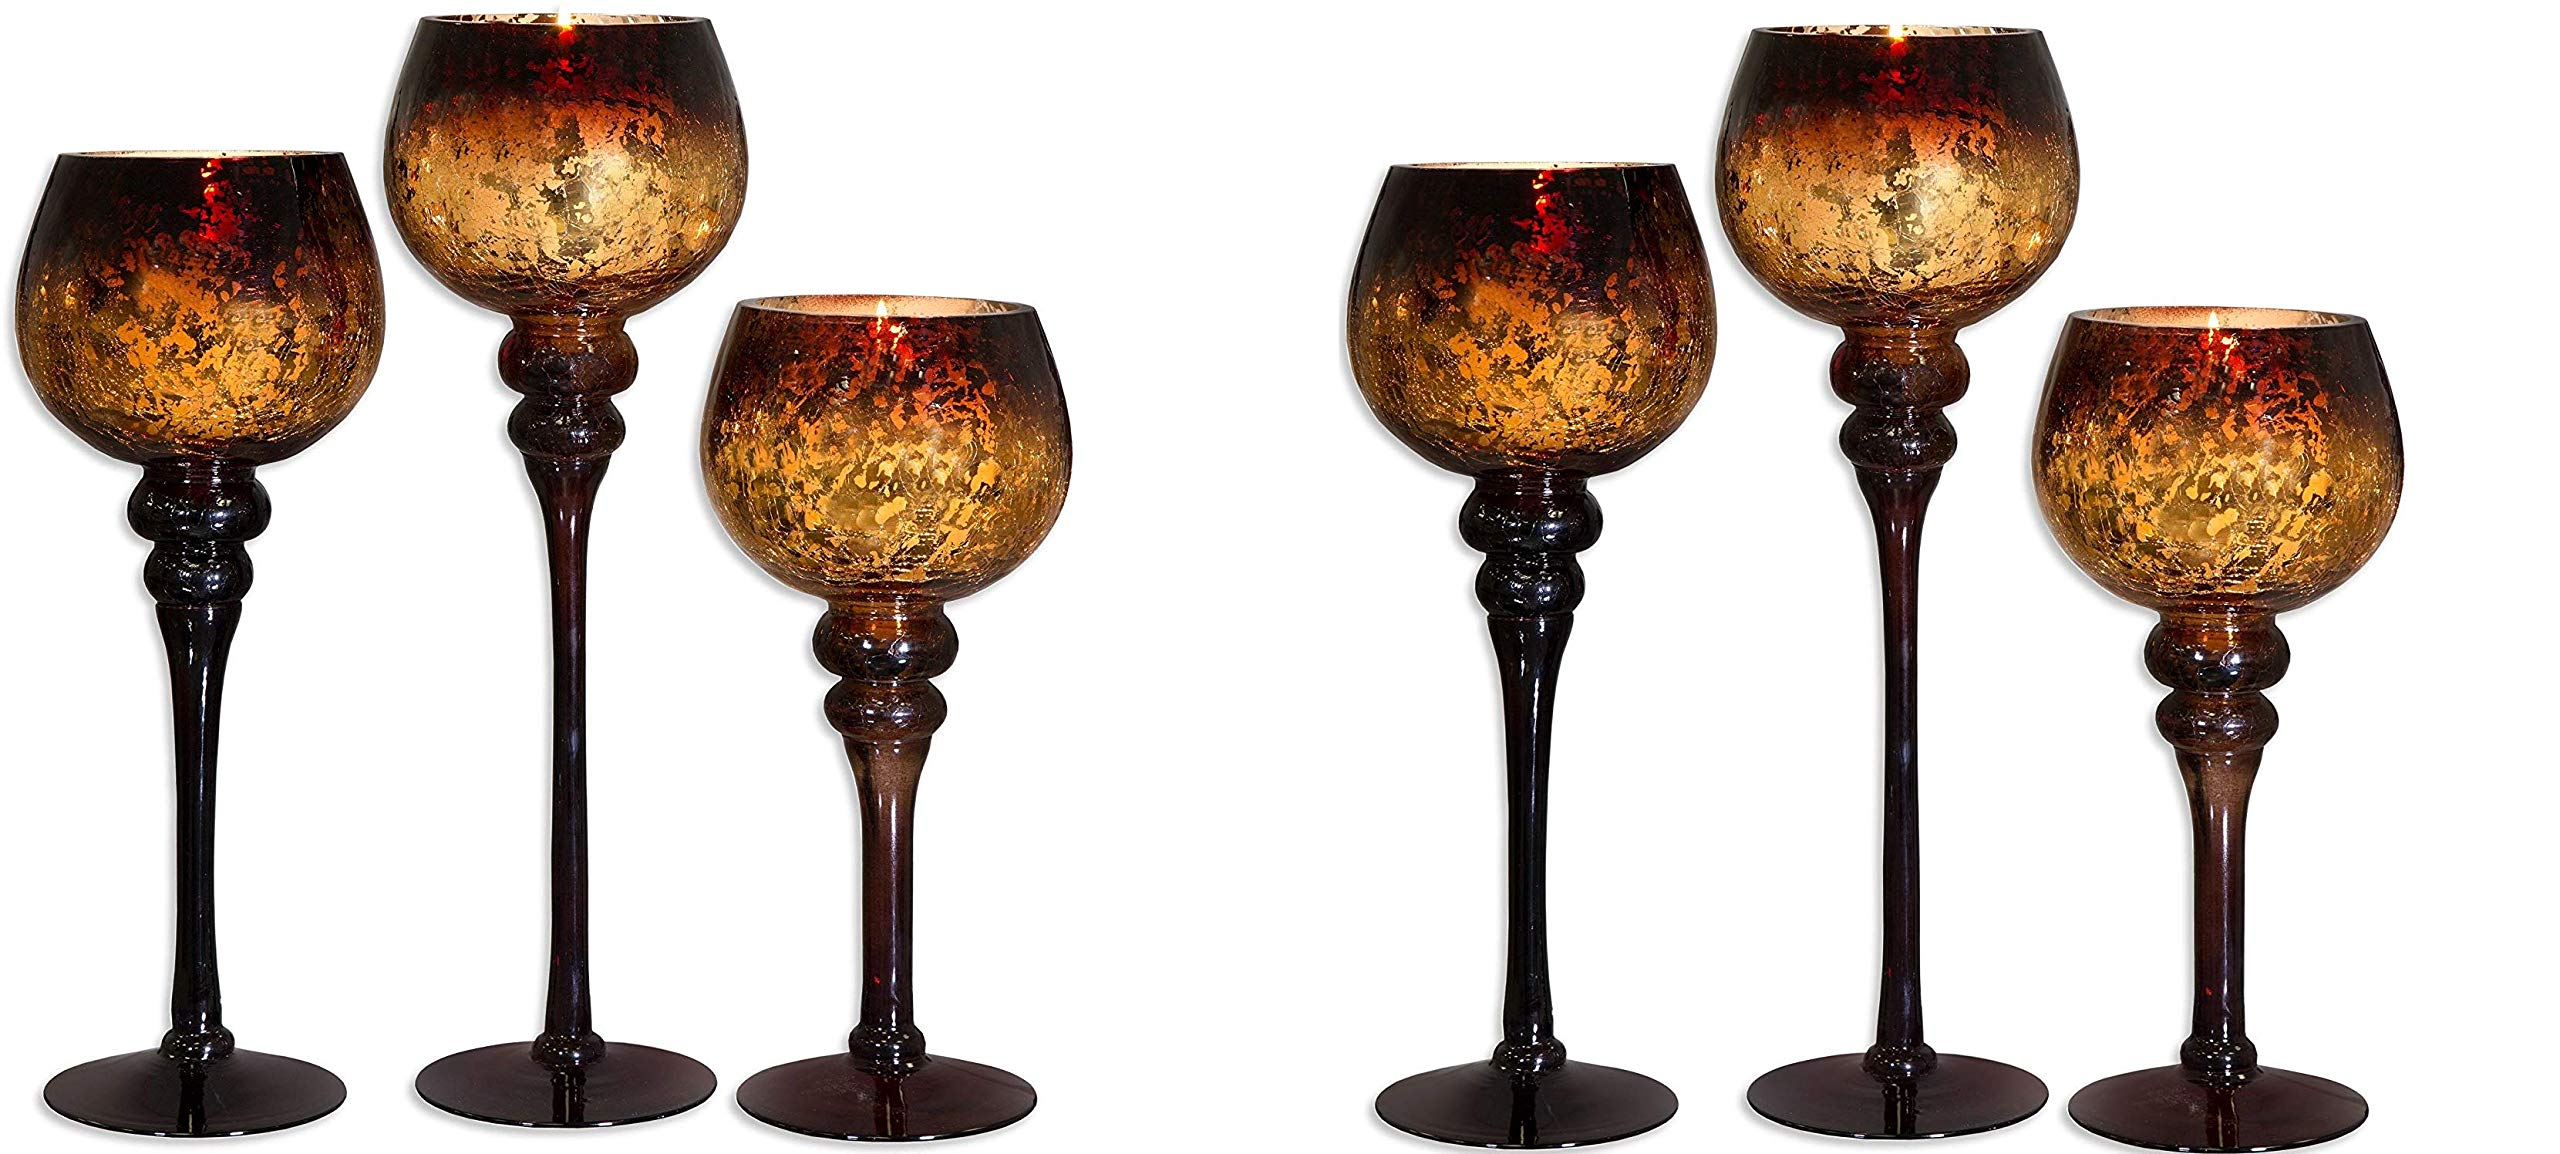 Home Essentials Mercury Chocolate Hurricanes Candle Holders, Set of 3 (Pack of.2)